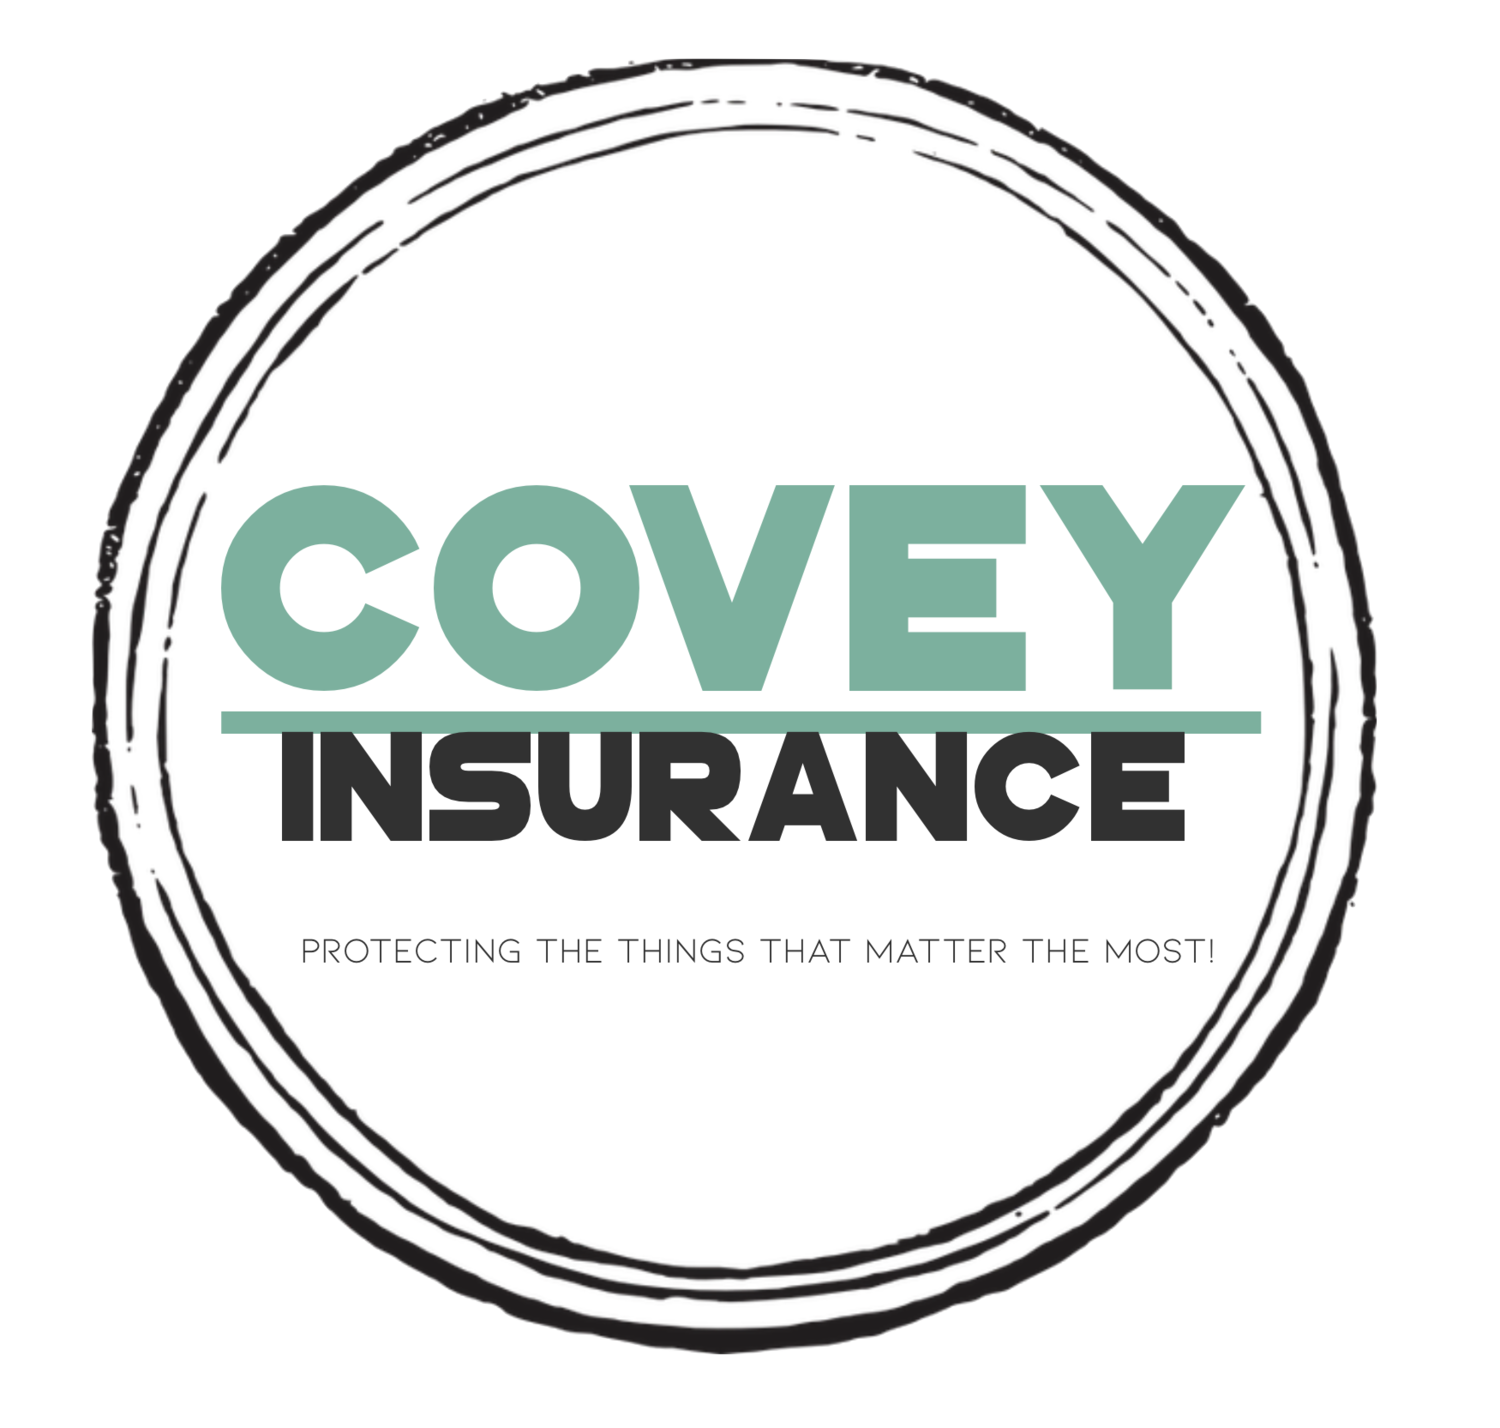 Covey Insurance